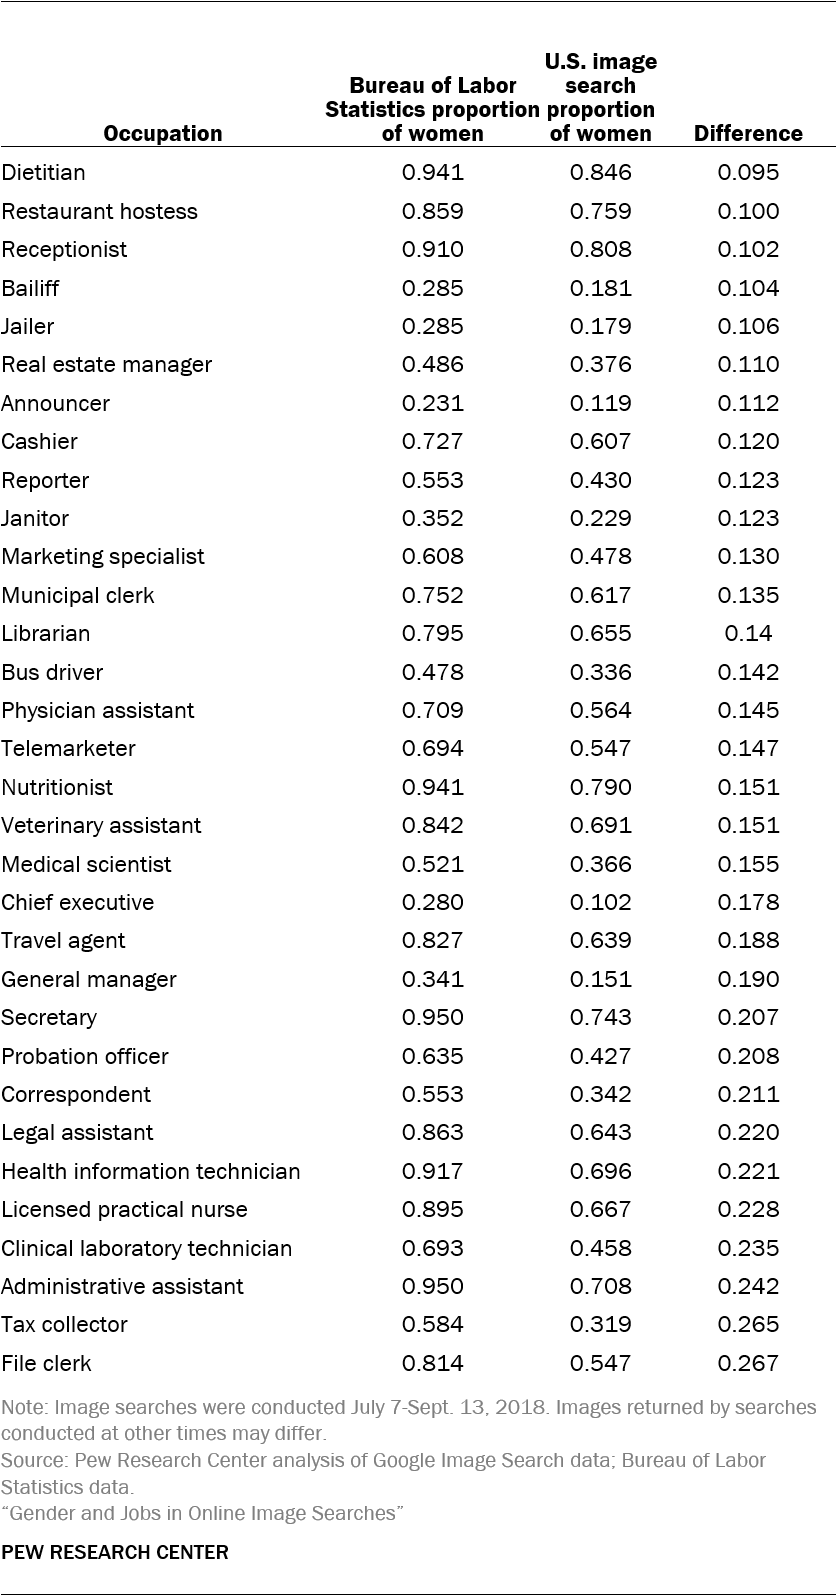 Comparison of BLS data and image search results